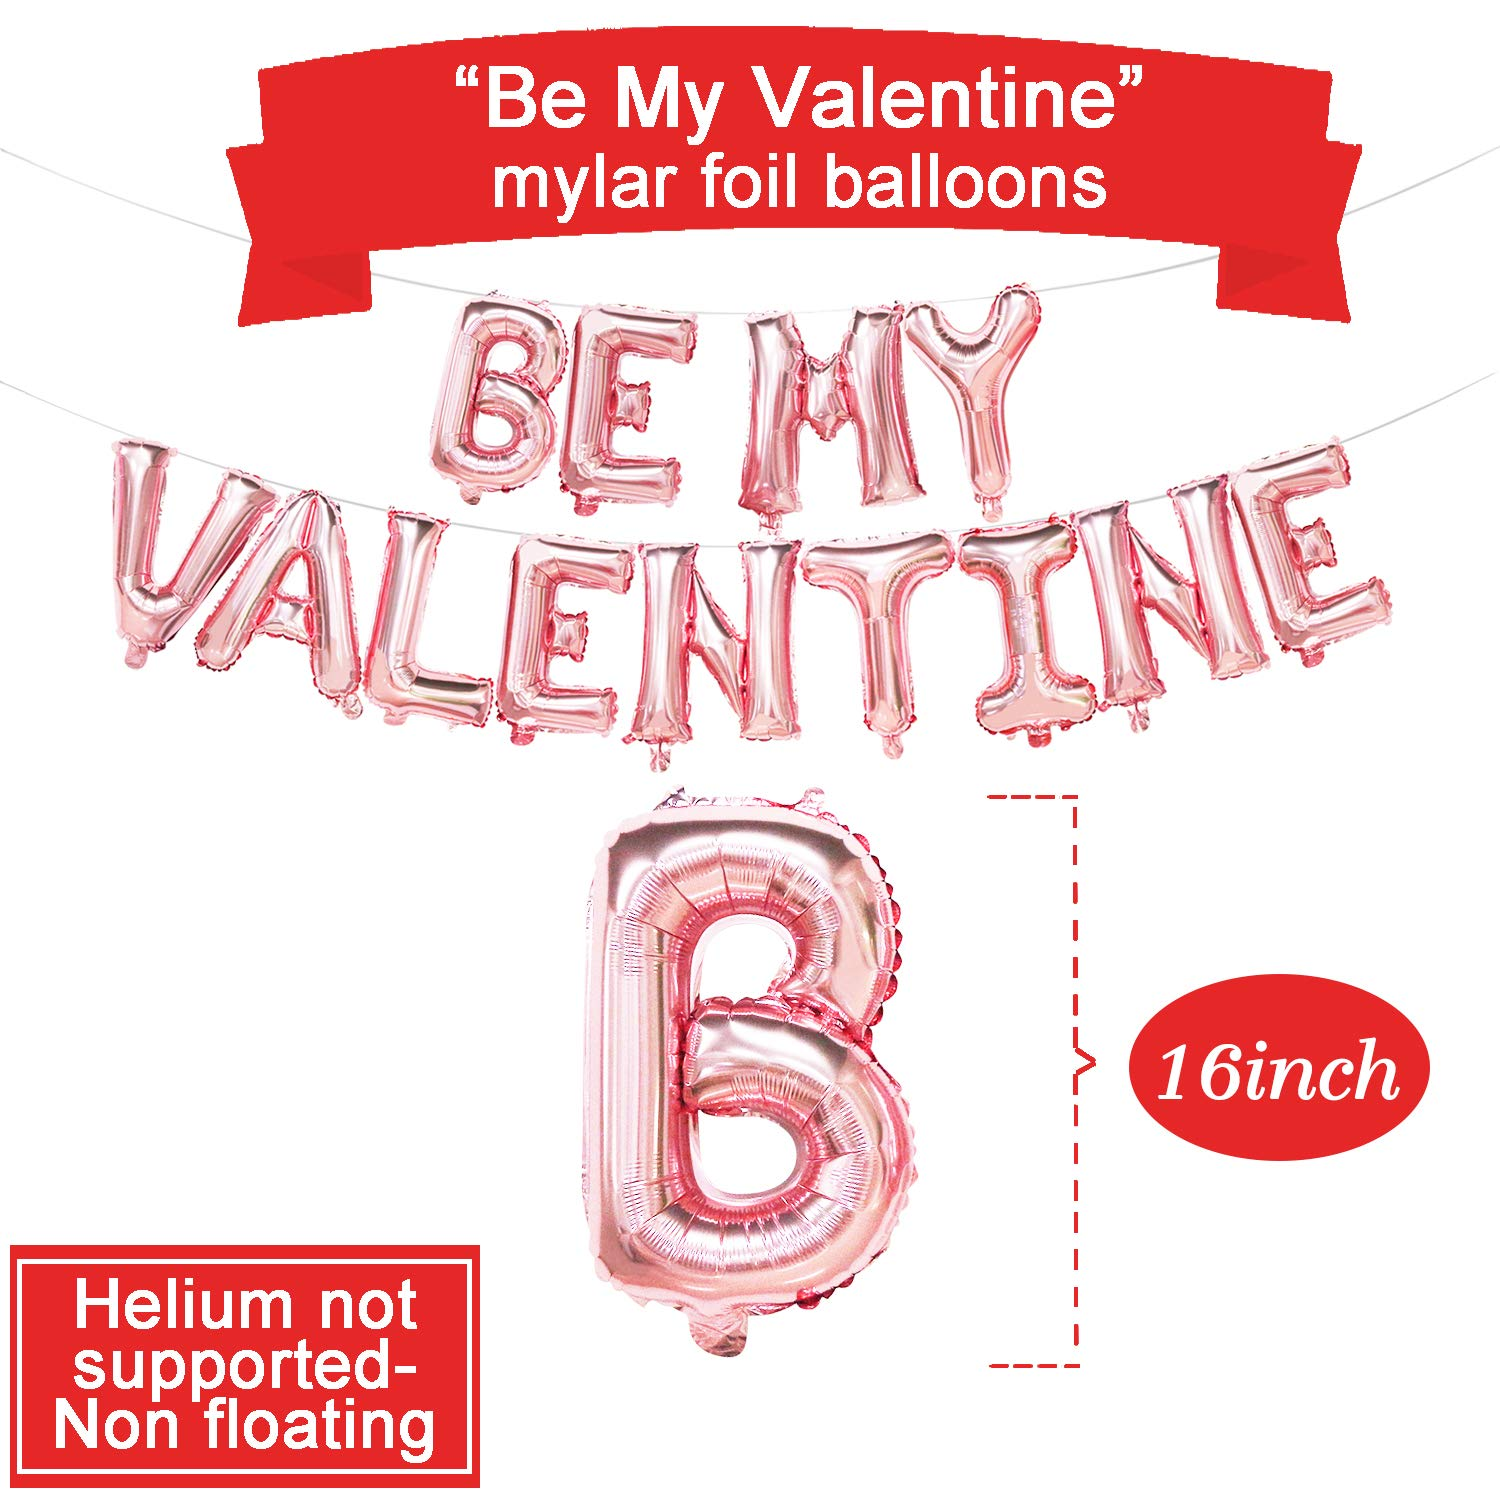 Rose Gold Be My Valentine Balloon Banner Valentines Balloons Decorations Party Balloons for Valentines Day Red and White Heart Printed Latex Balloons